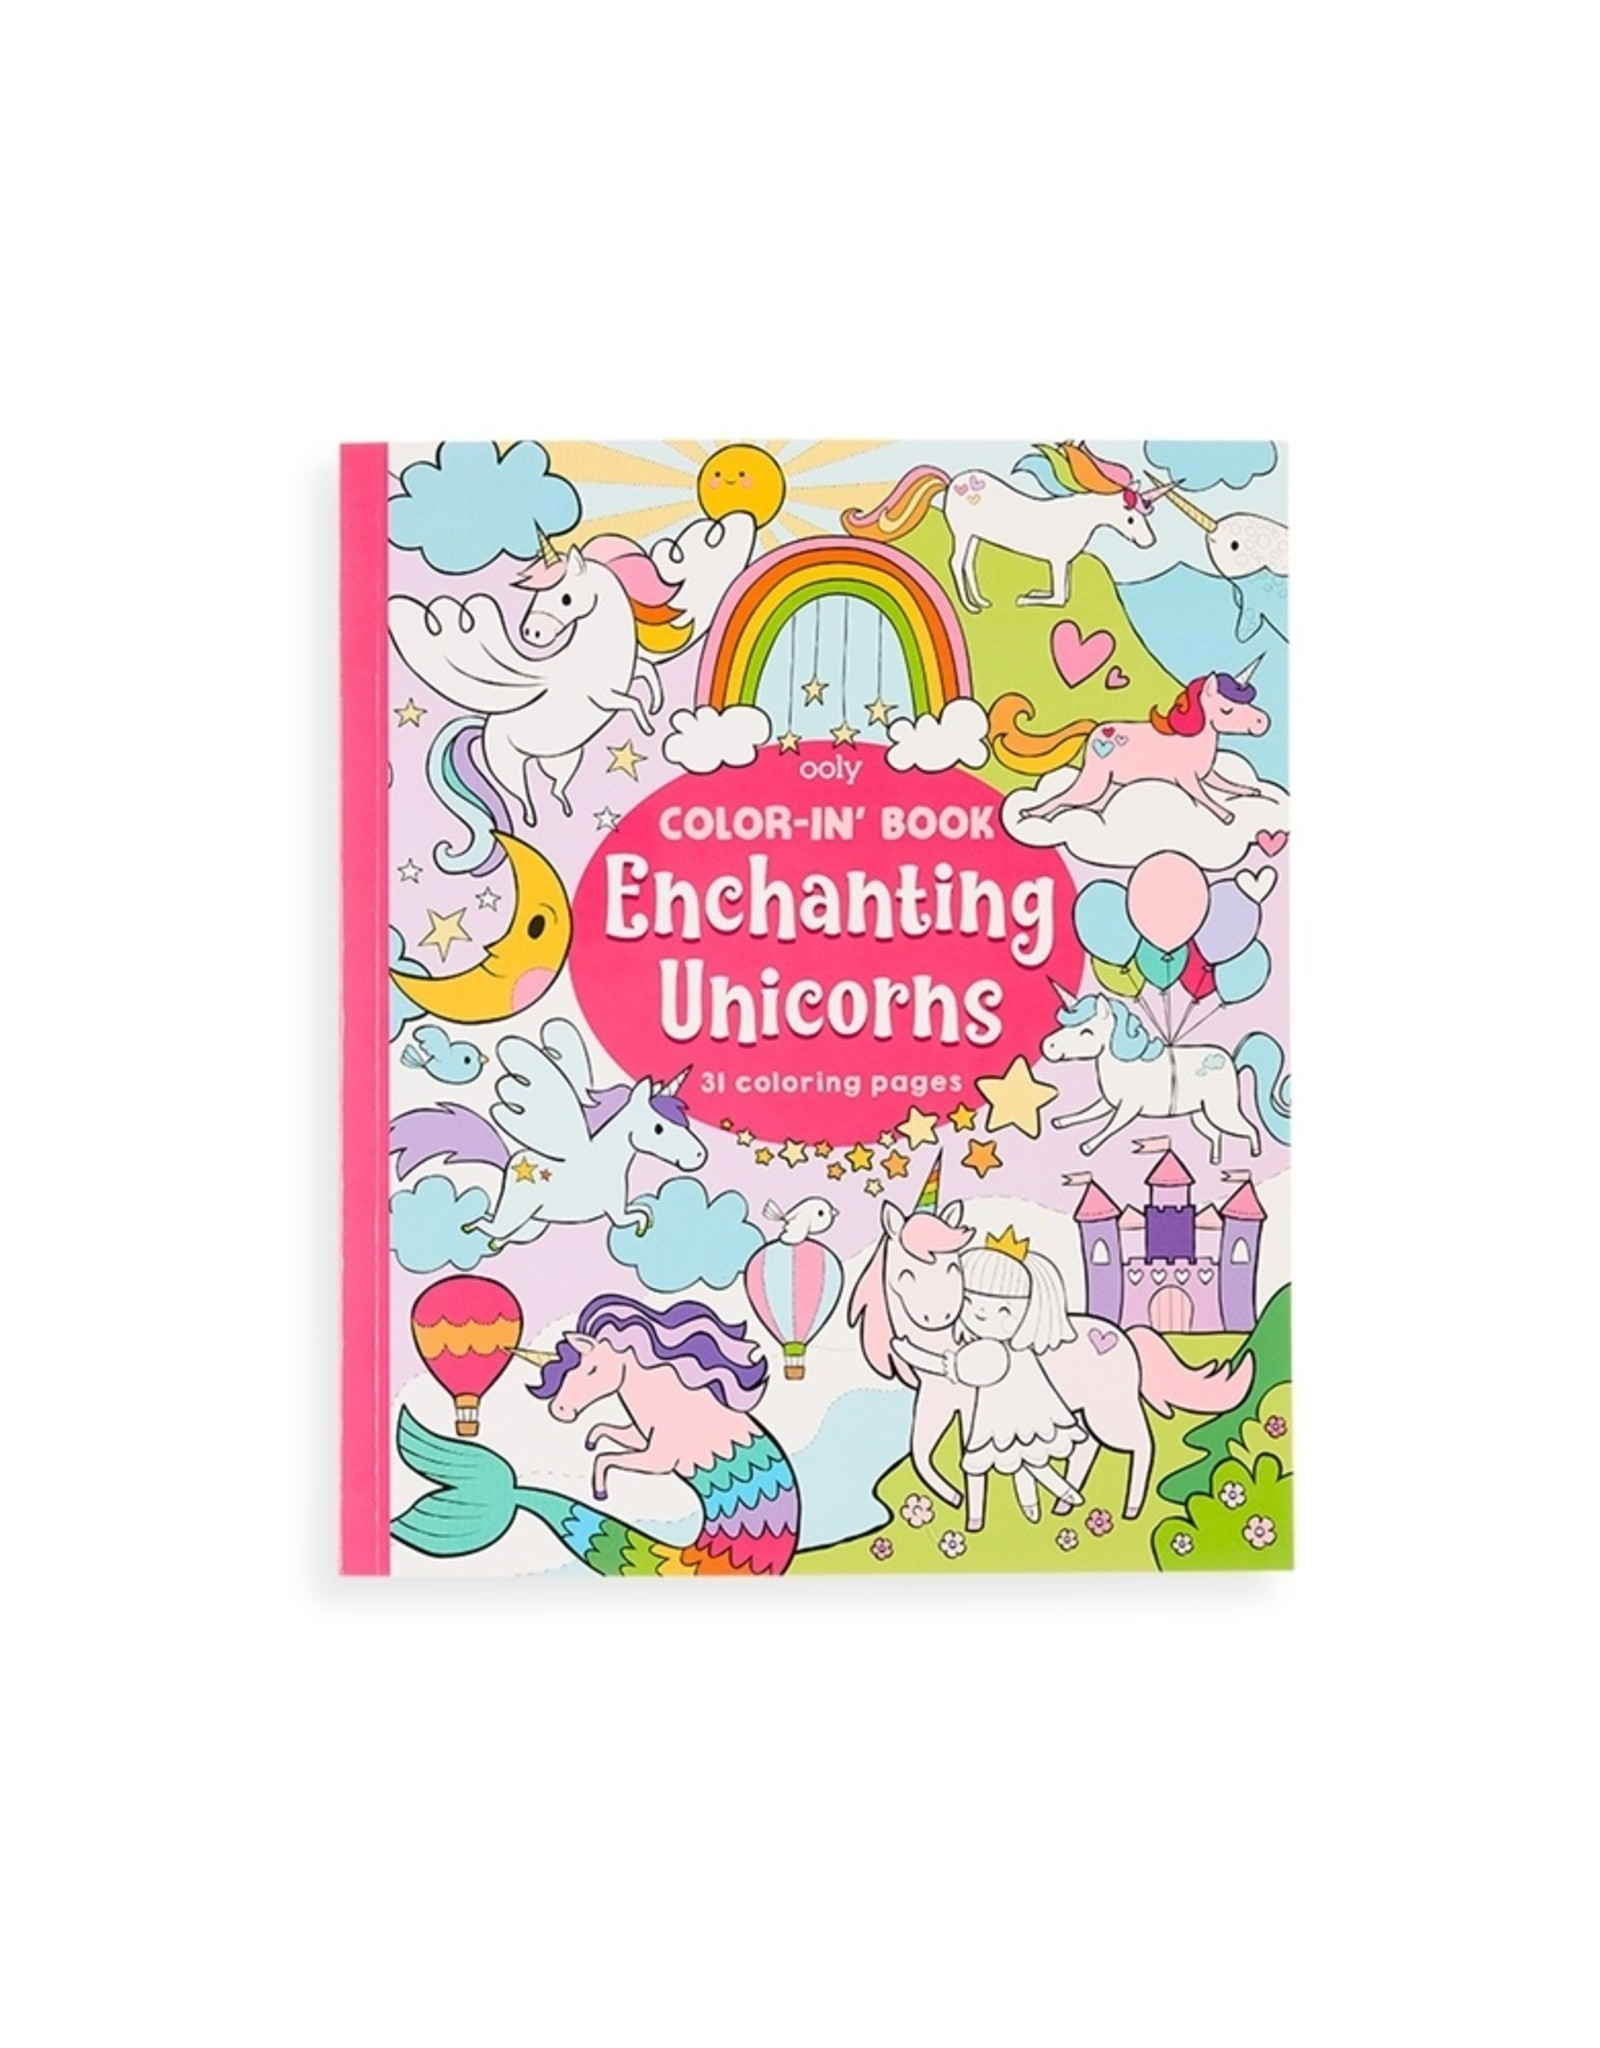 OOLY enchanting unicorns color-in' book